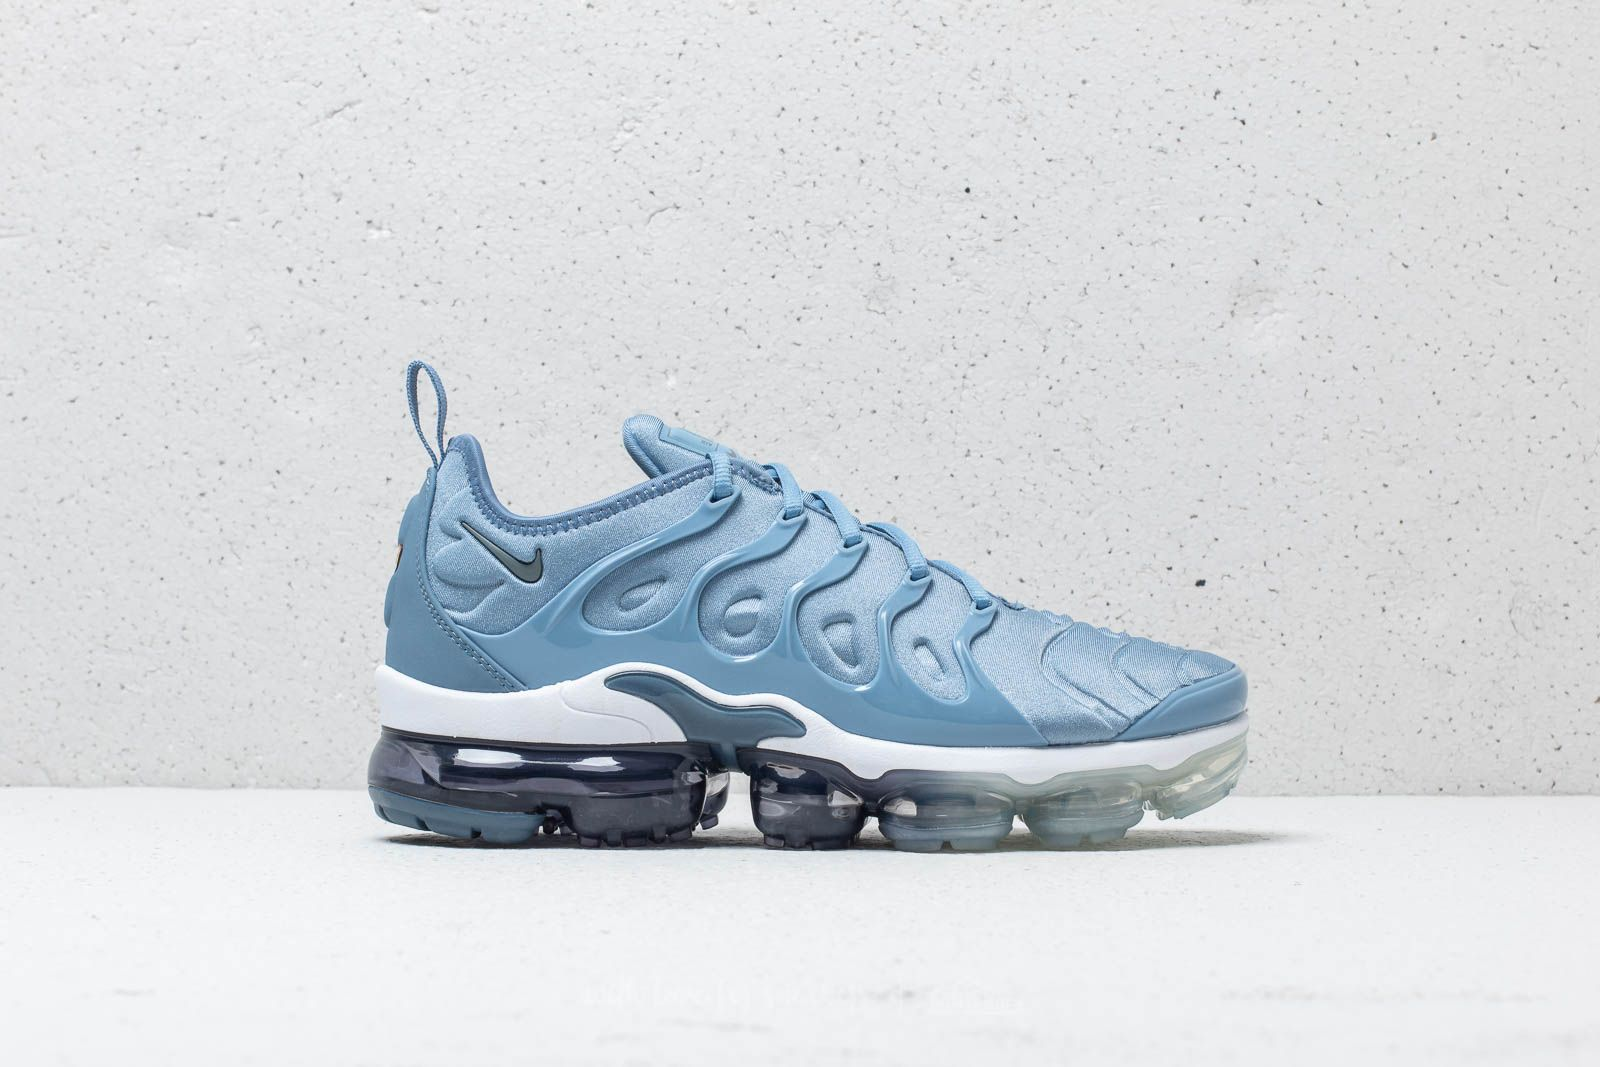 Nike Air Max Plus Decon WMNS Psychic Blue Release Date